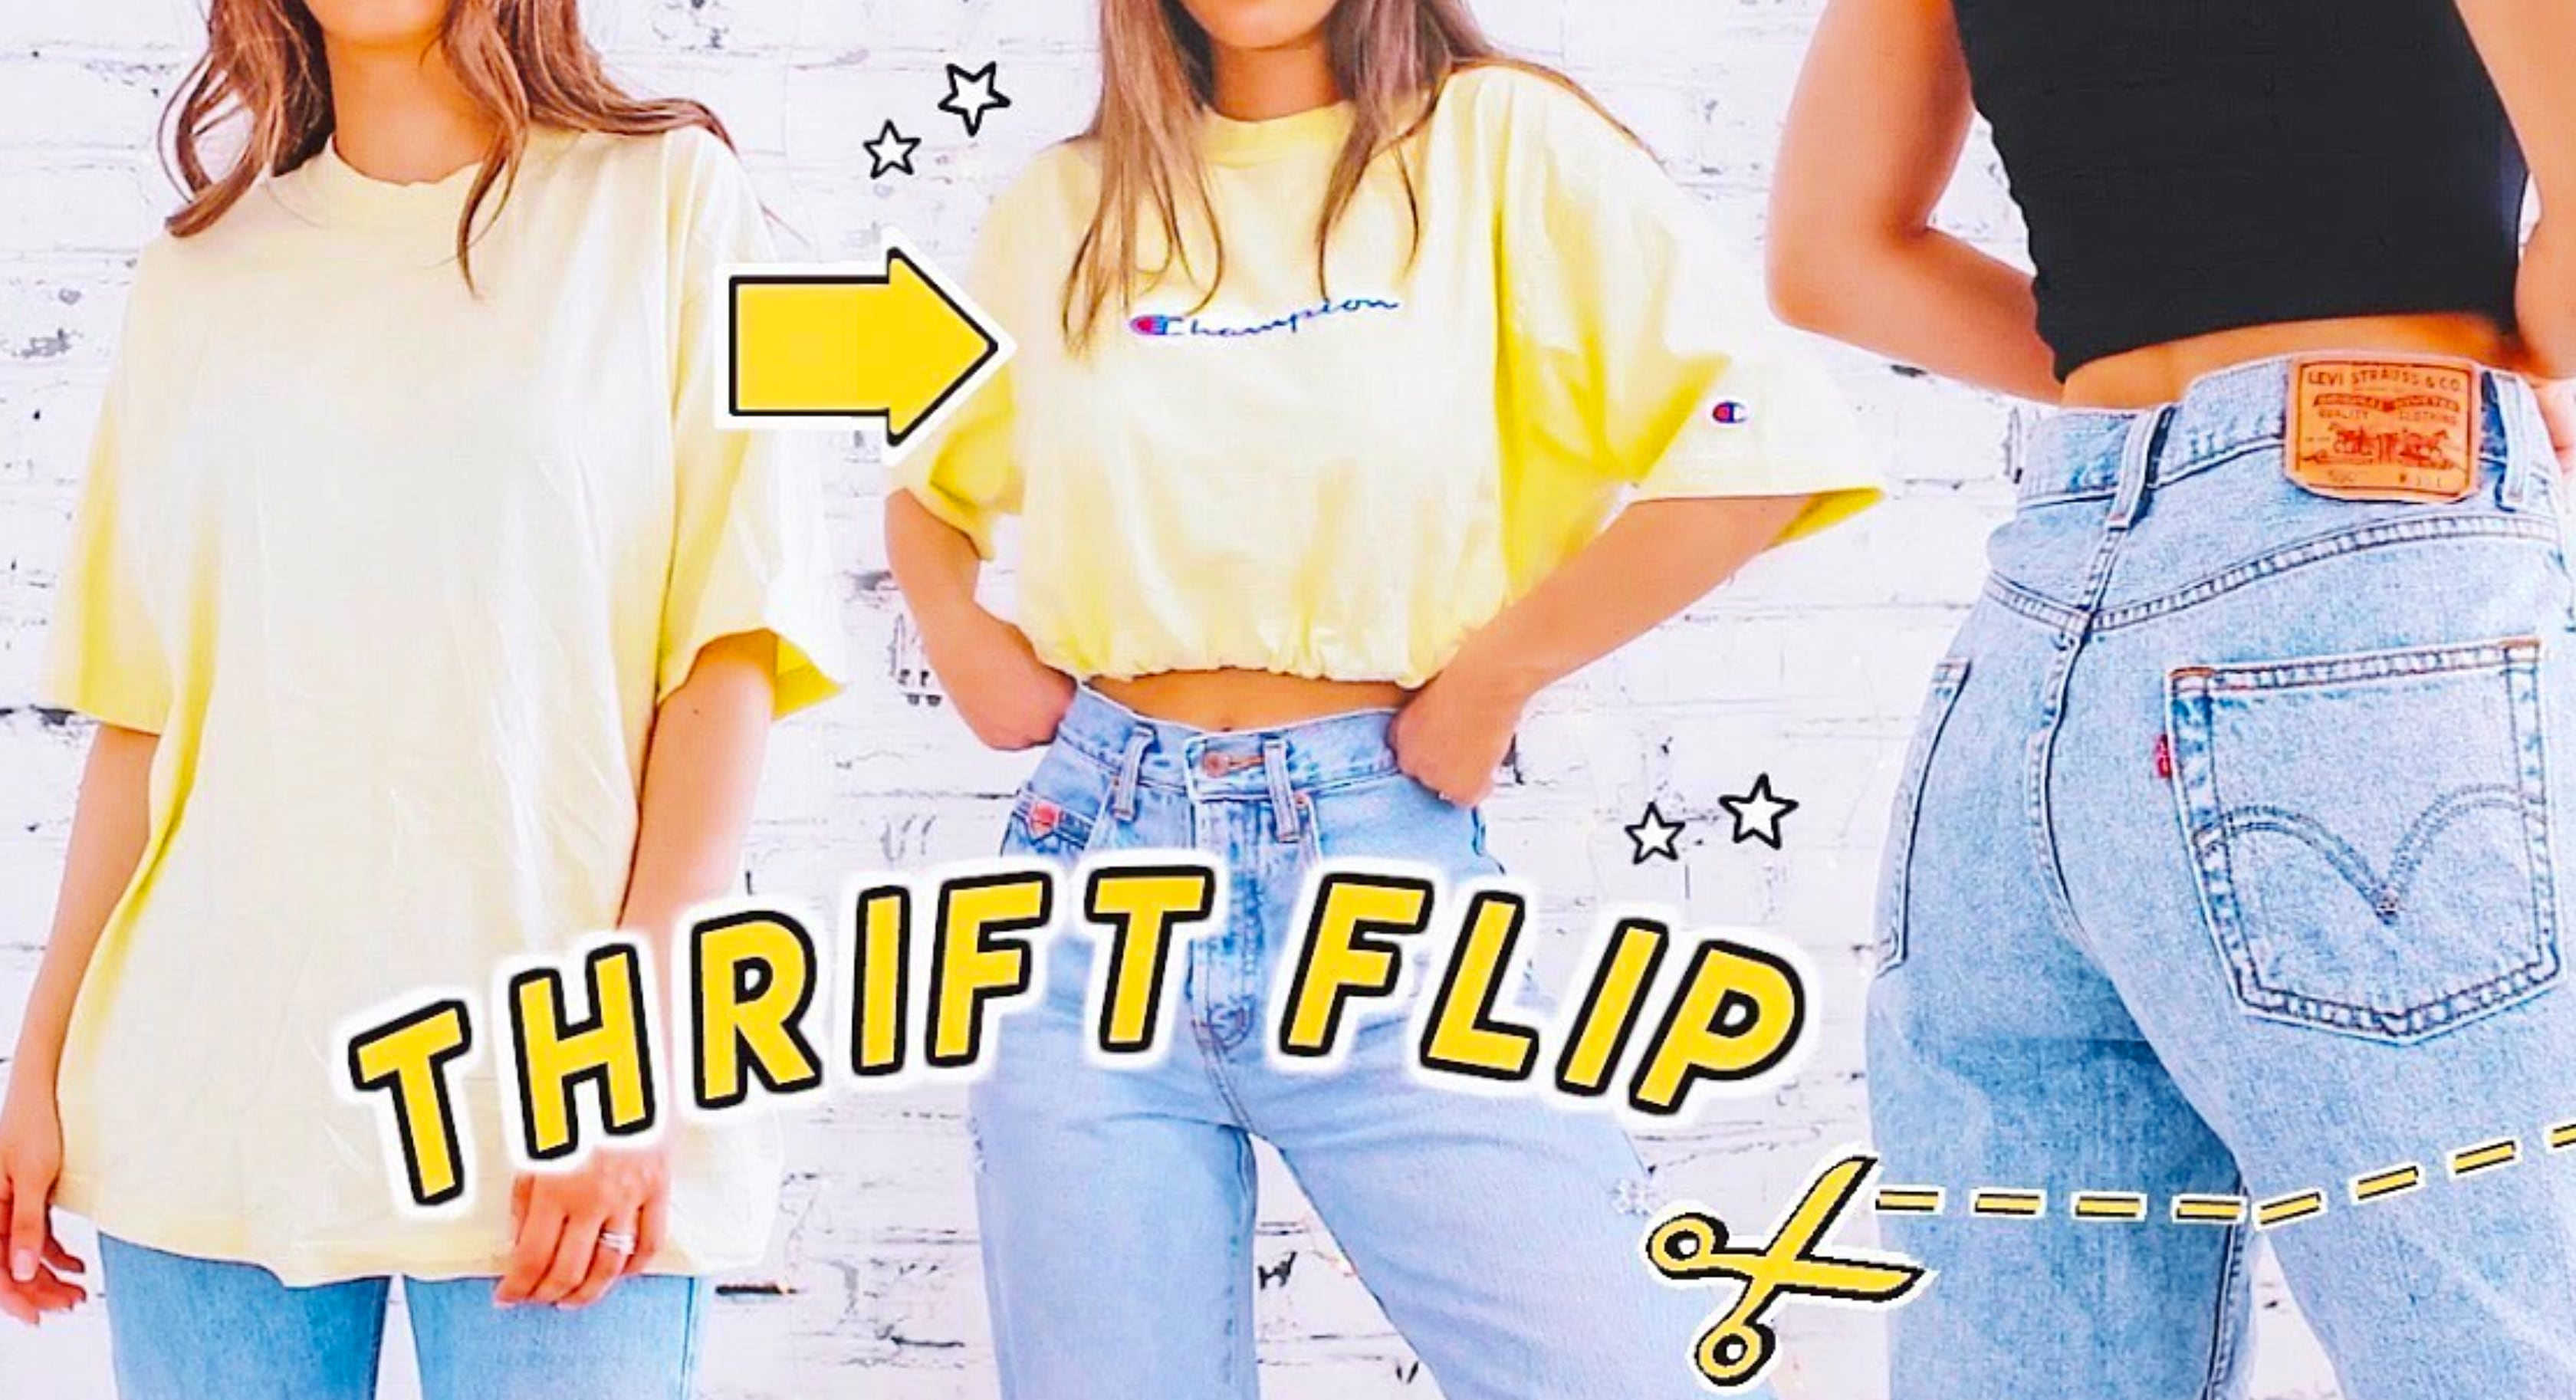 Transform Thrift Store Clothes Into The Outfit Of Your Dreams